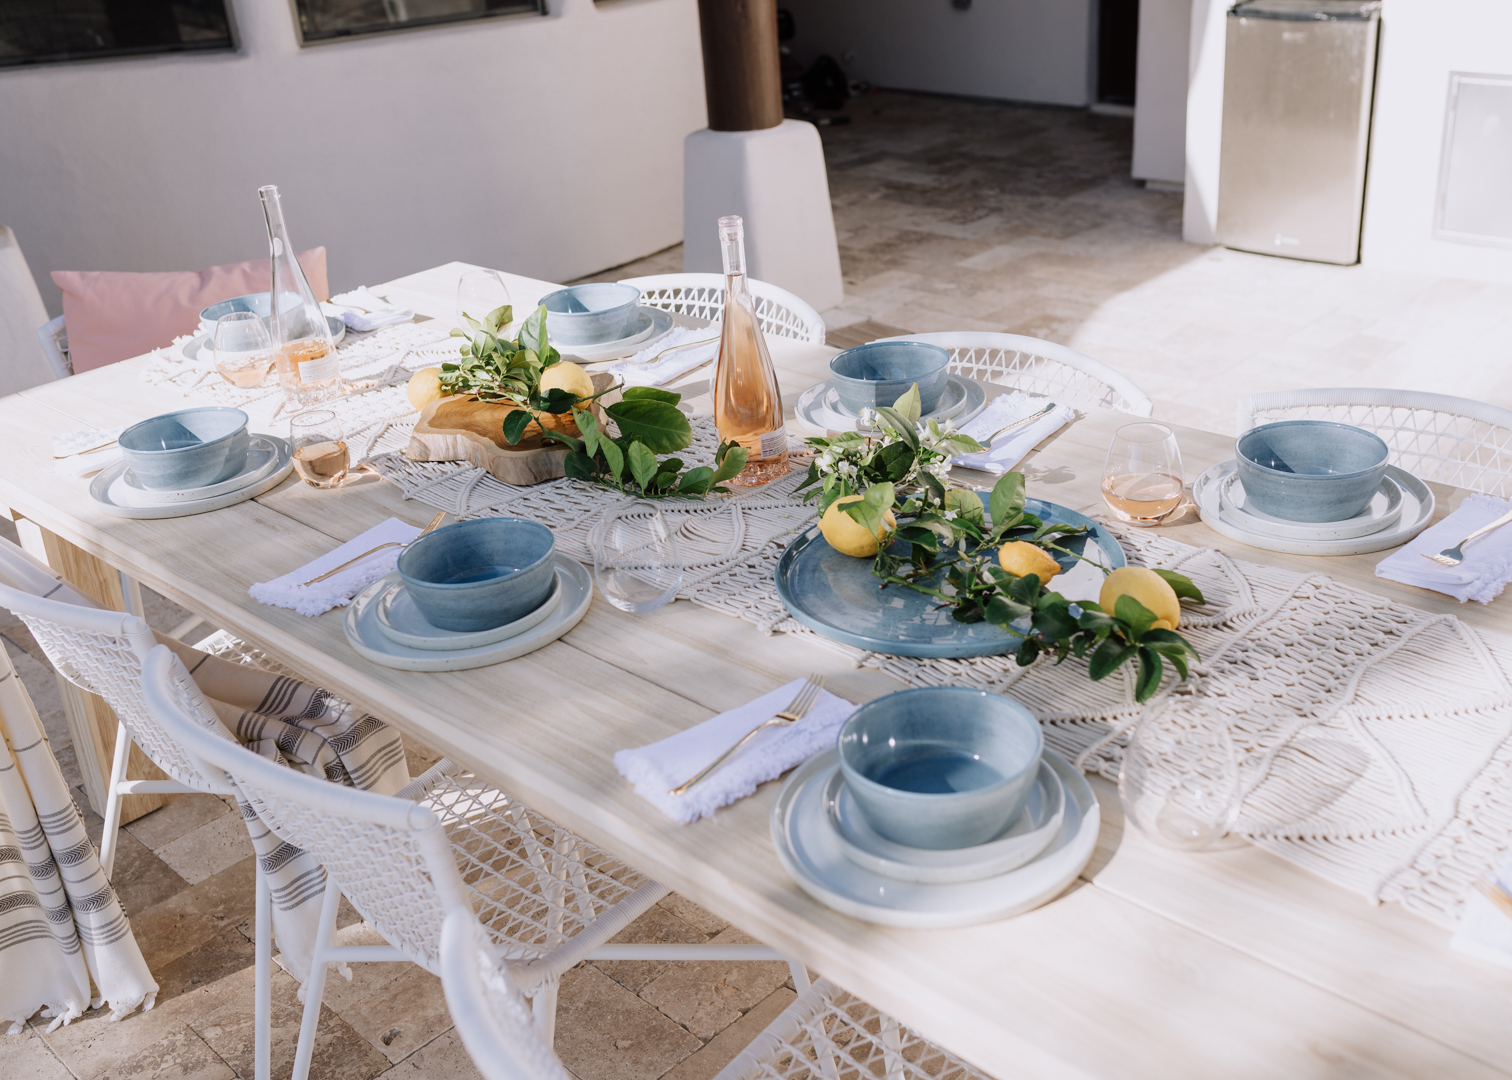 ready for a backyard brunch | thelovedesignedlife.com #tablescape #backyard #outdoordining